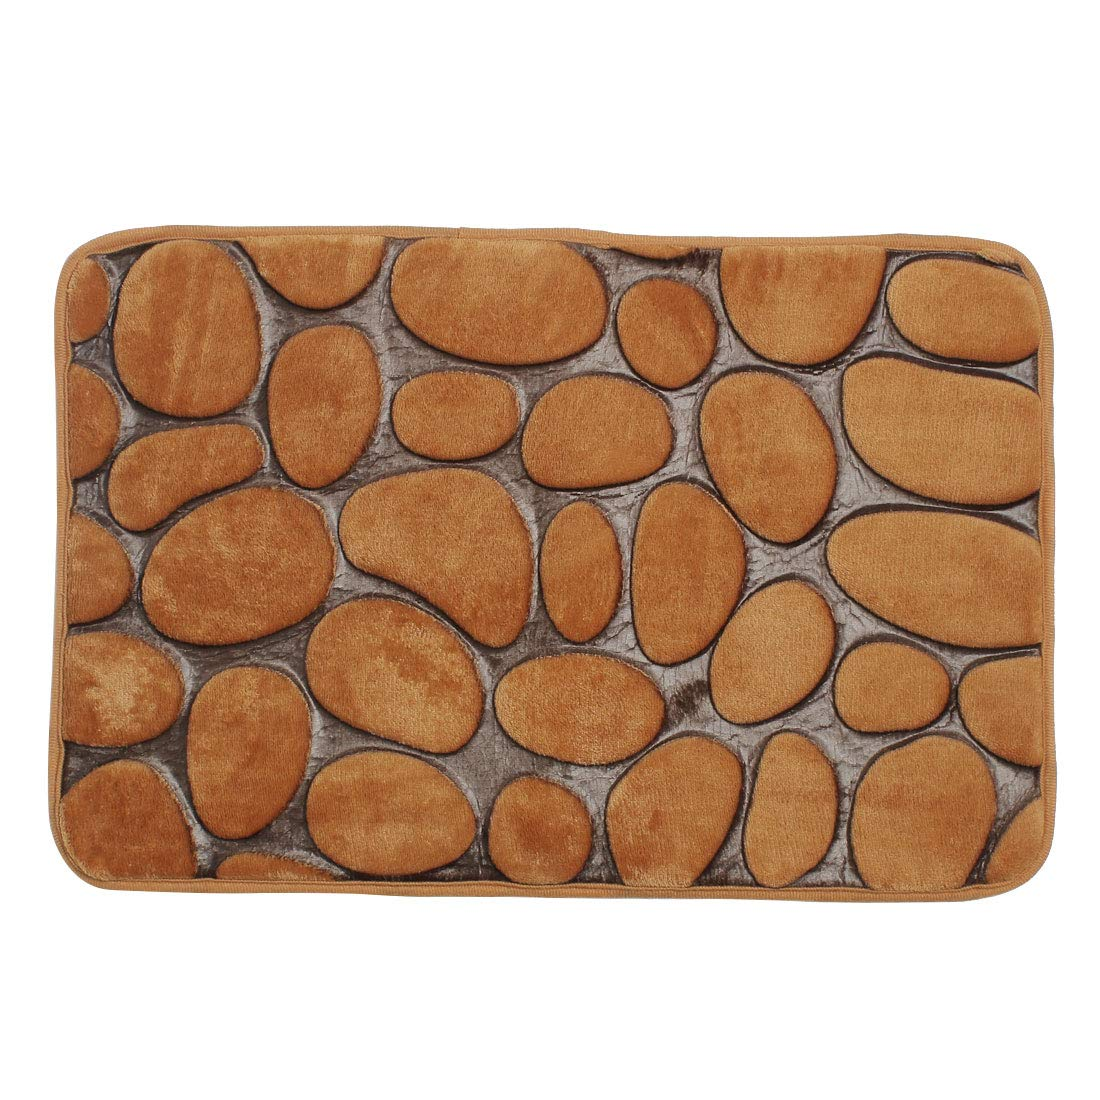 uxcell Bath Mat Rug 24'' x 16'' Flannel Fabric Memory Foam Fill Washable Non-Slip Absorbent for Bathroom Kitchen Door Shoe Rack Brown